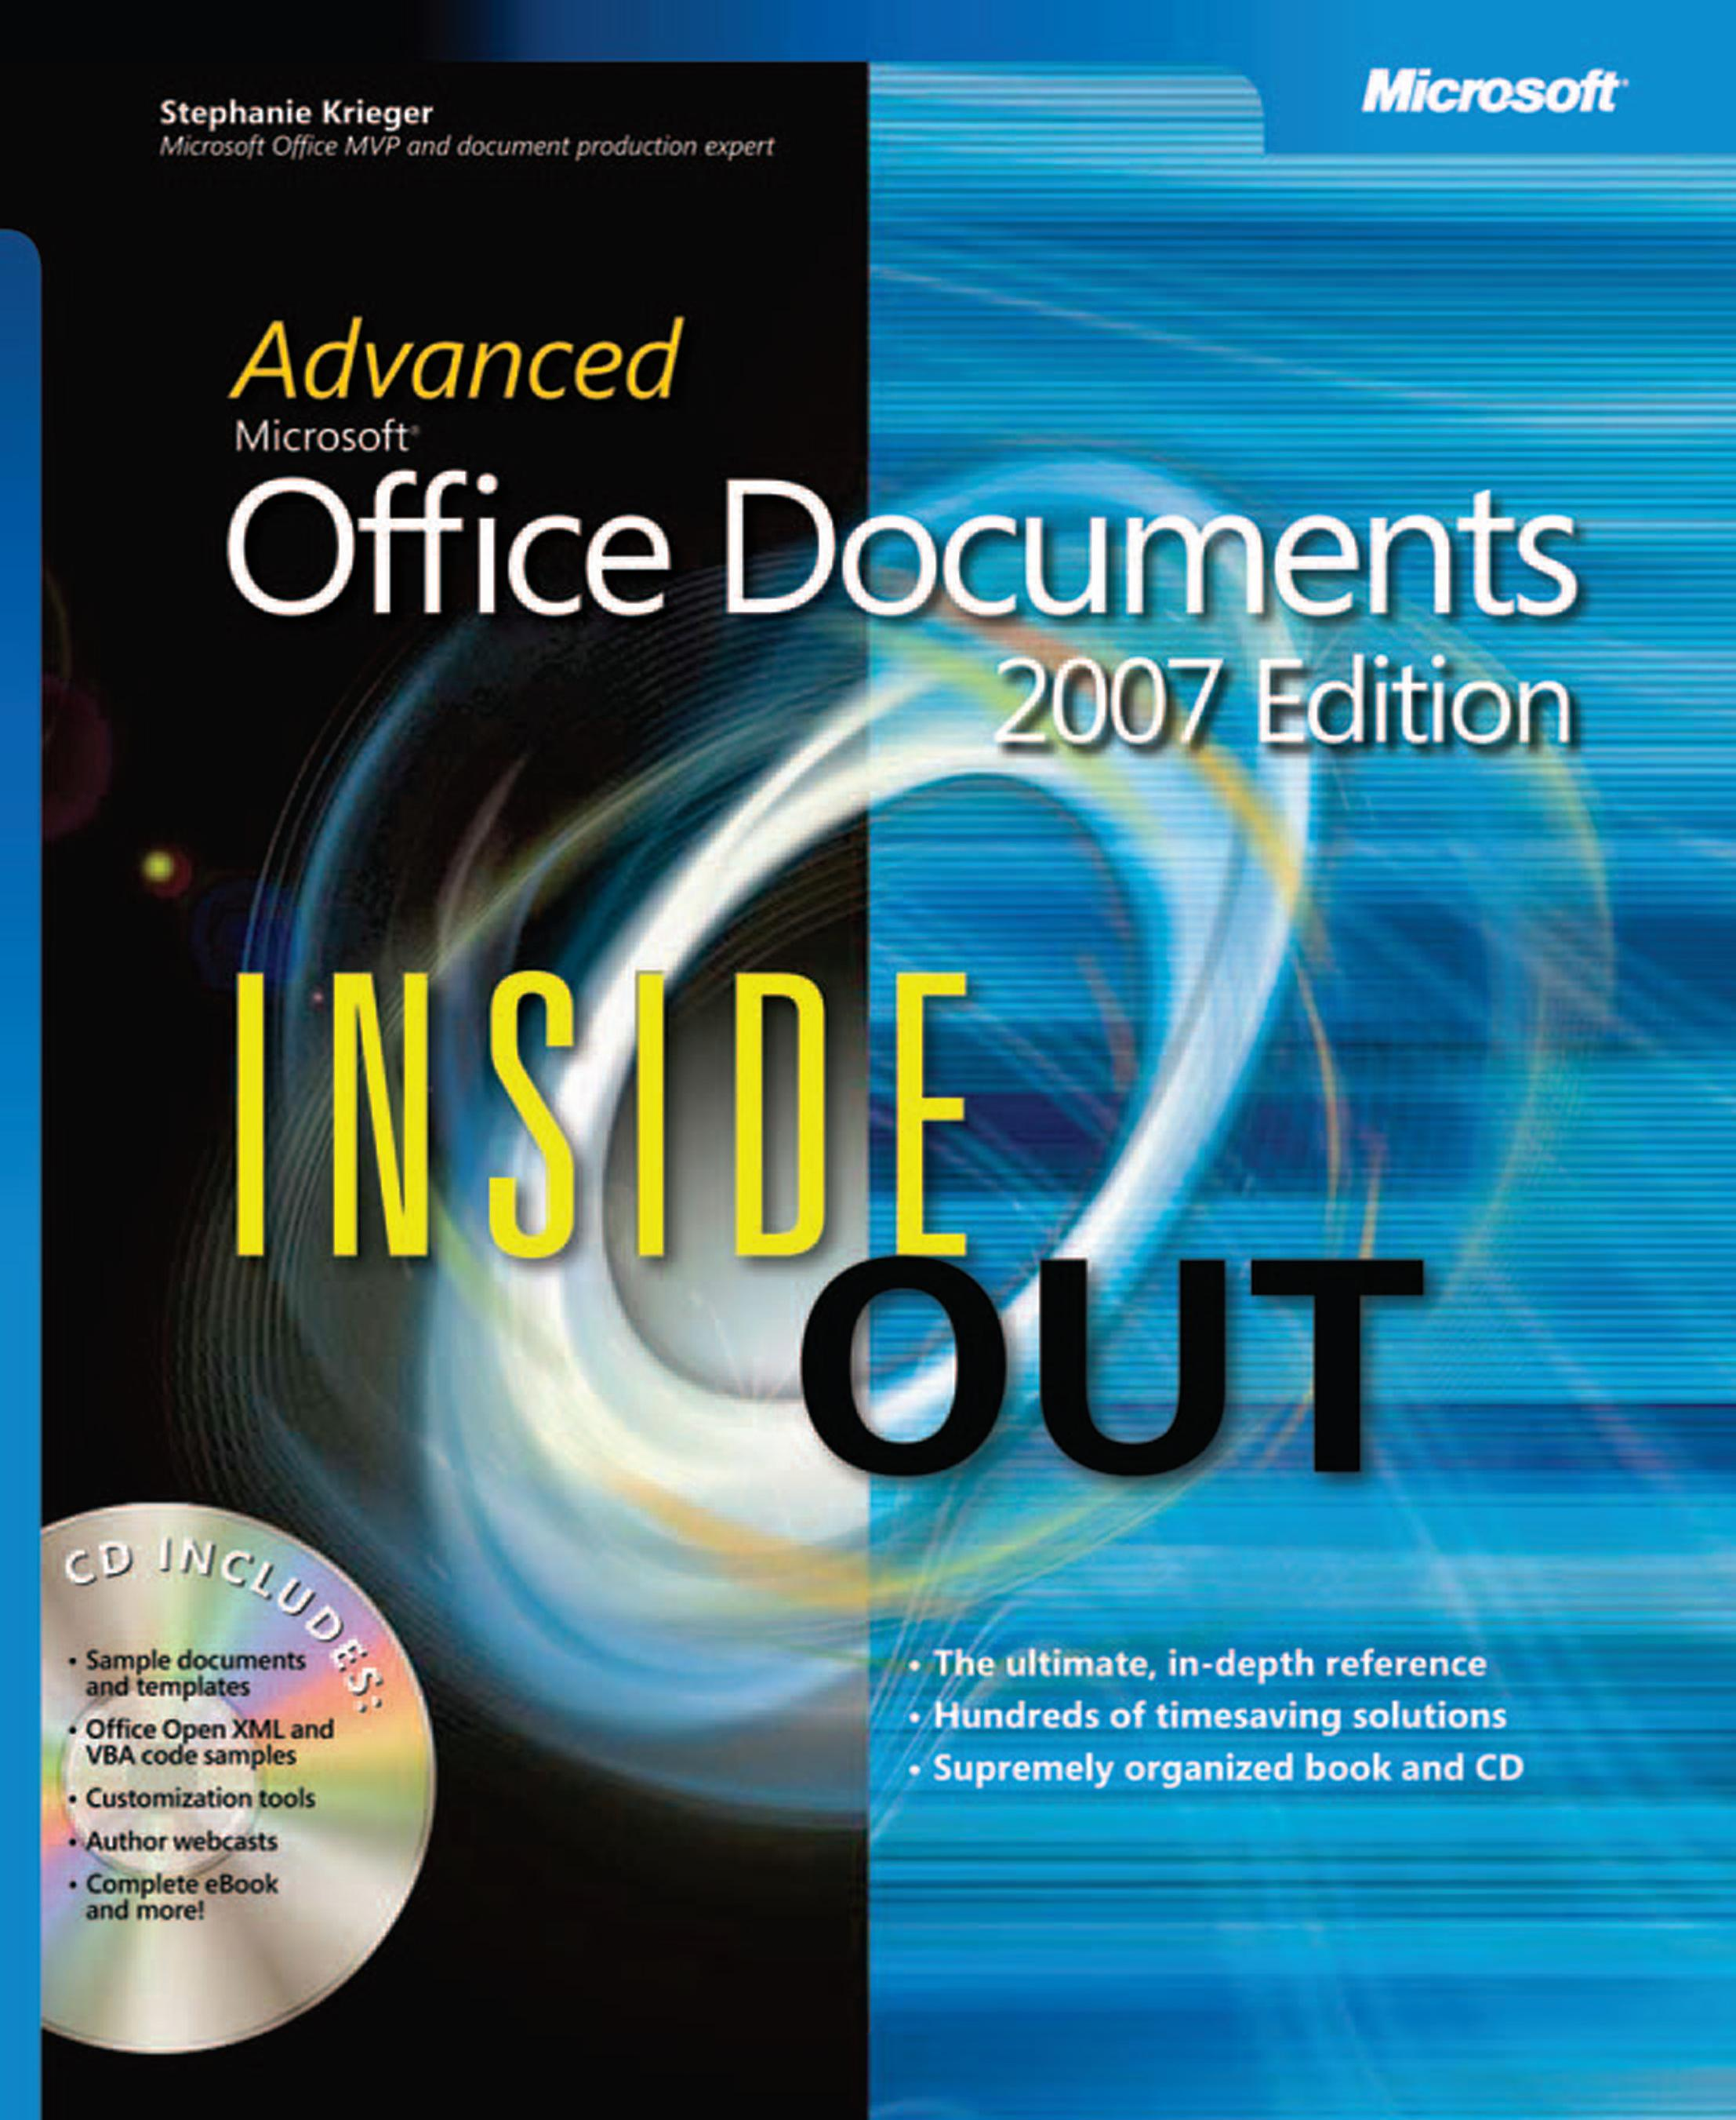 advanced microsoft office documents 2007 edition inside